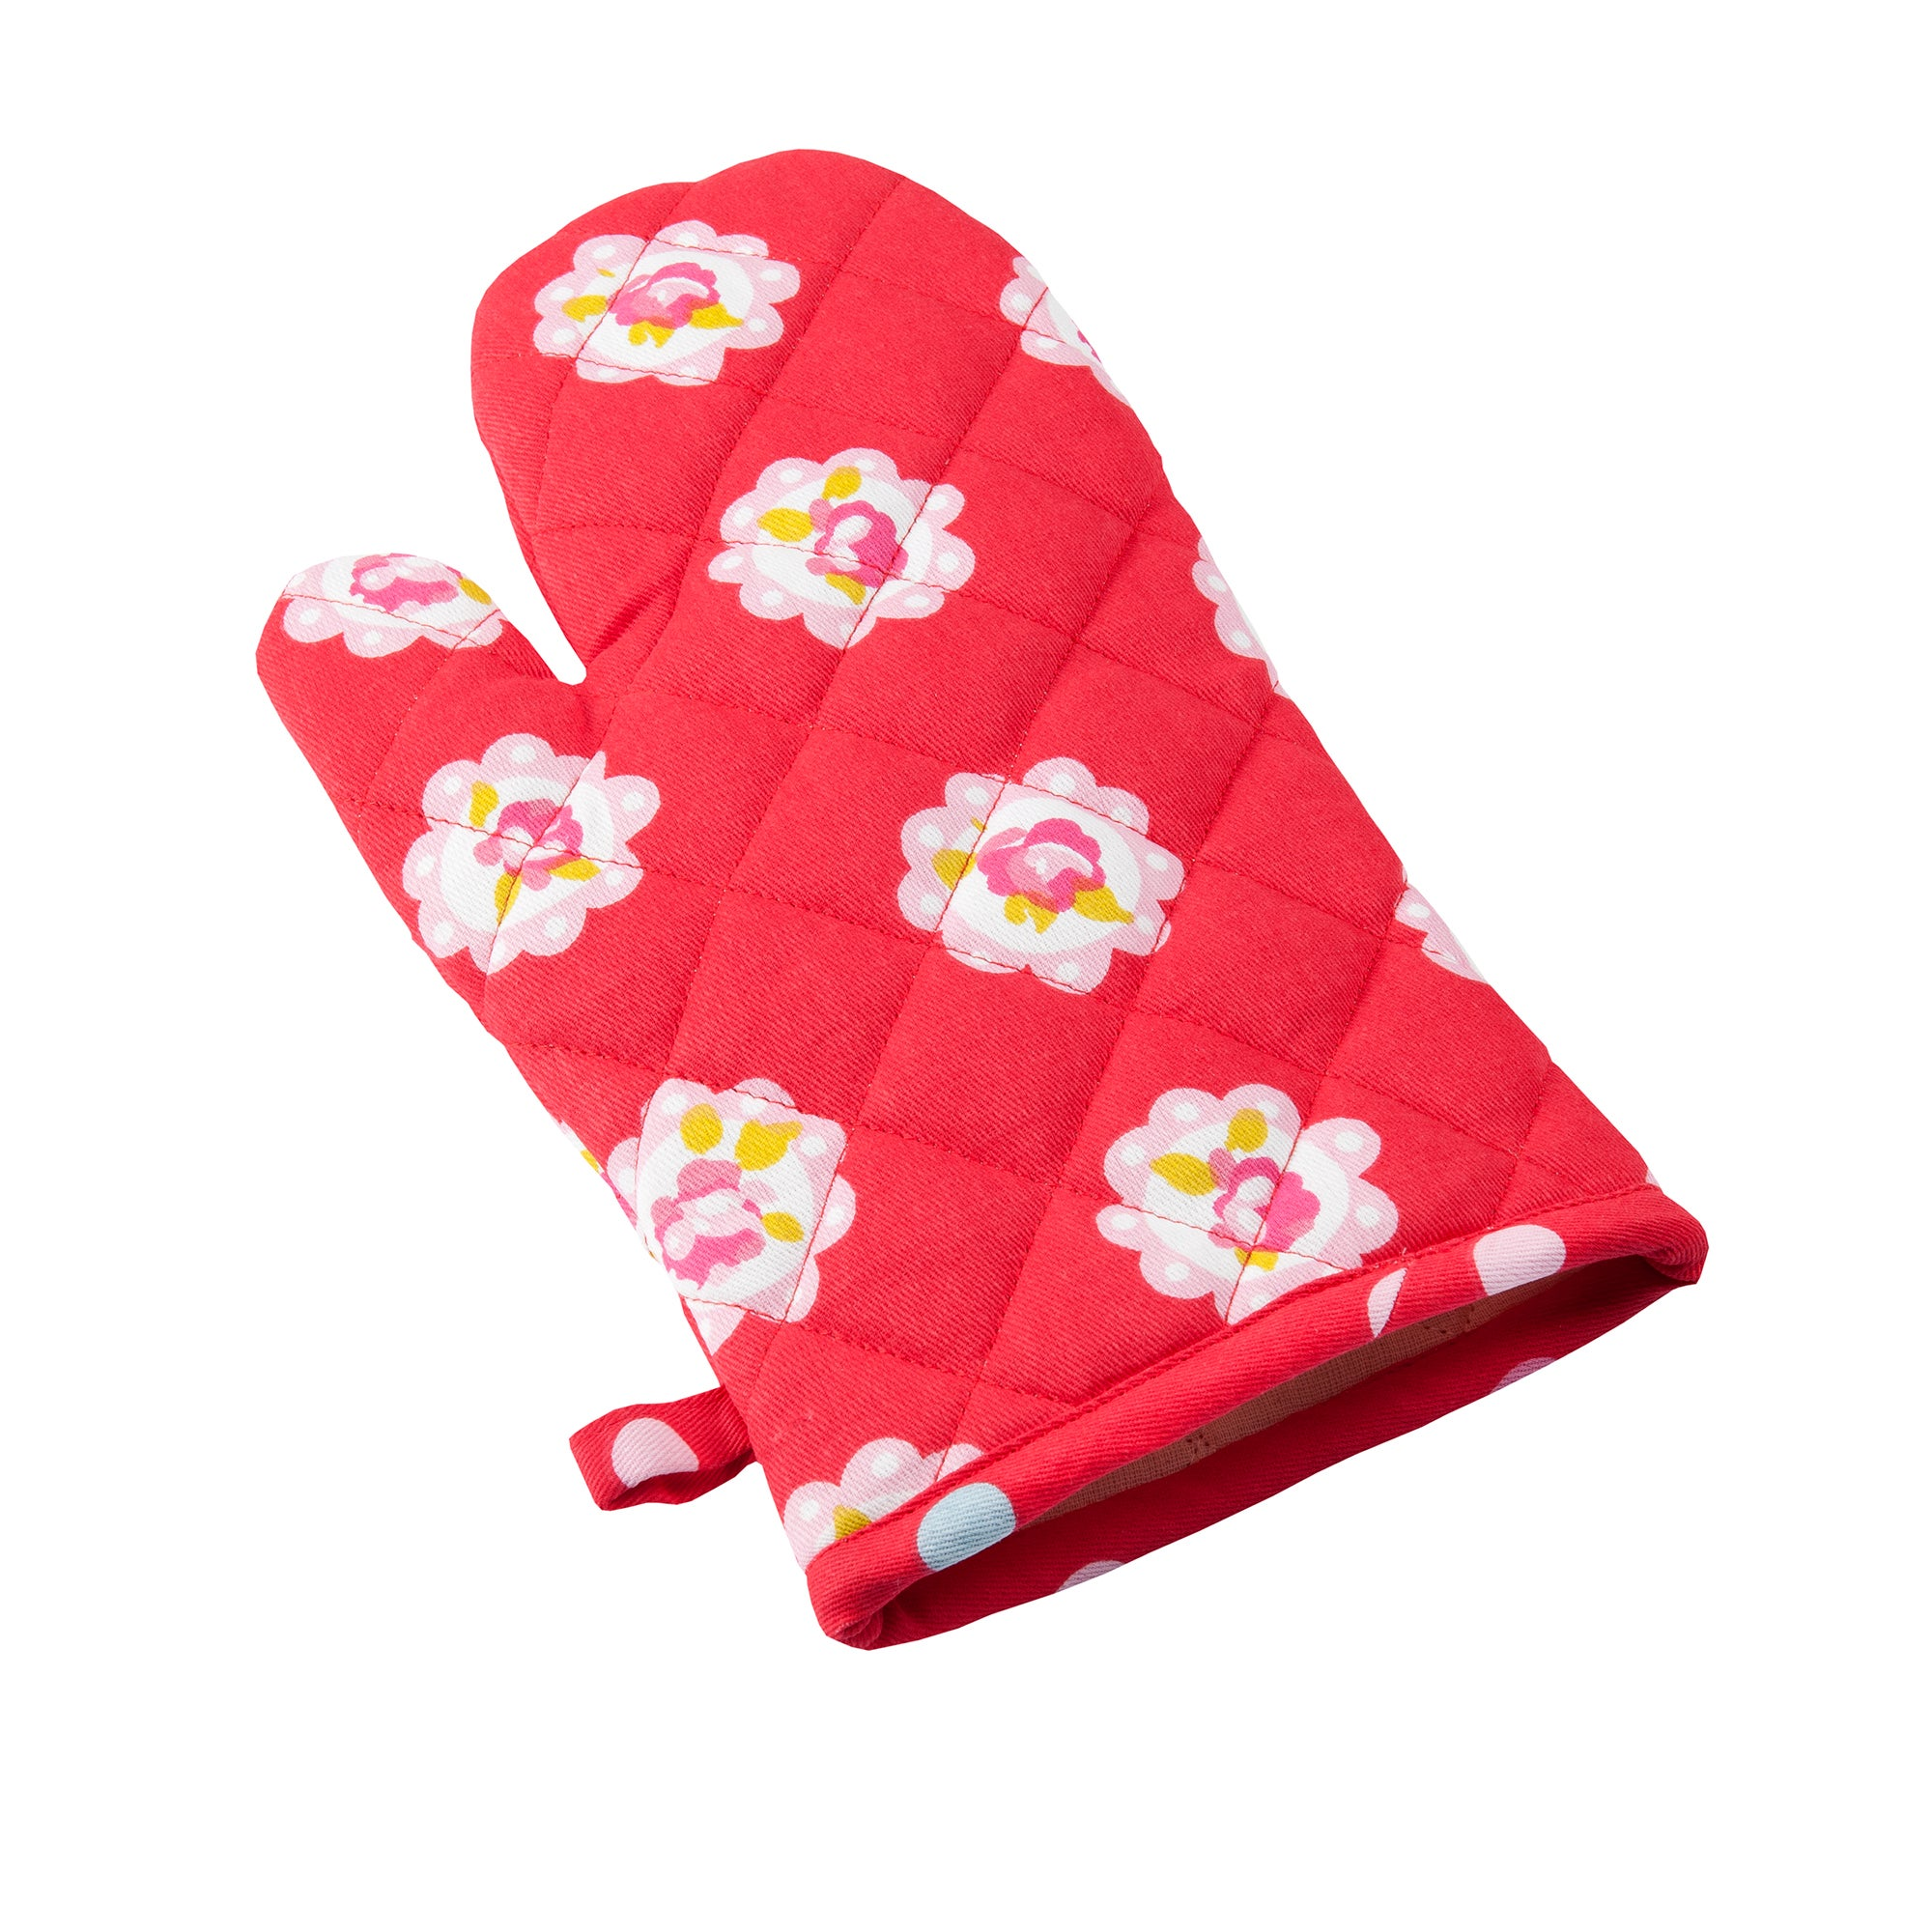 Rose and Ellis Allexton Single Oven Glove